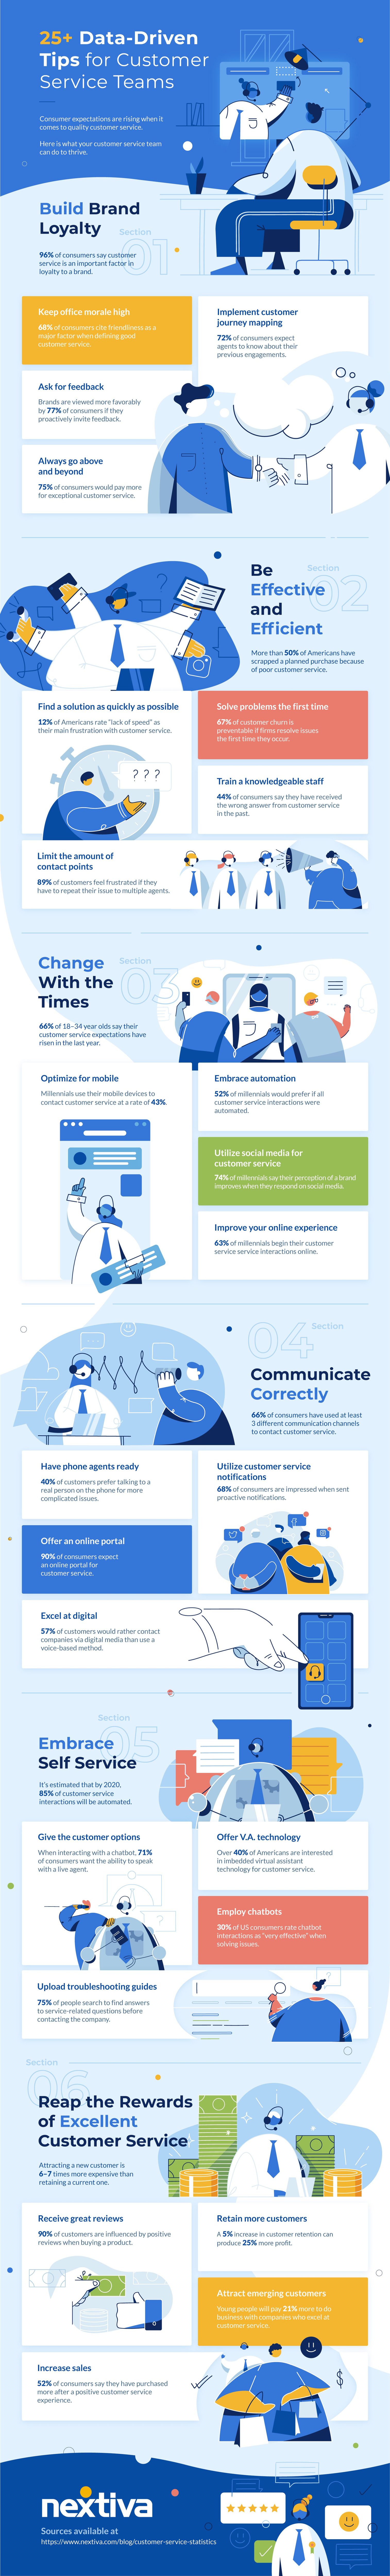 Customer service trends Infographic by Nextiva